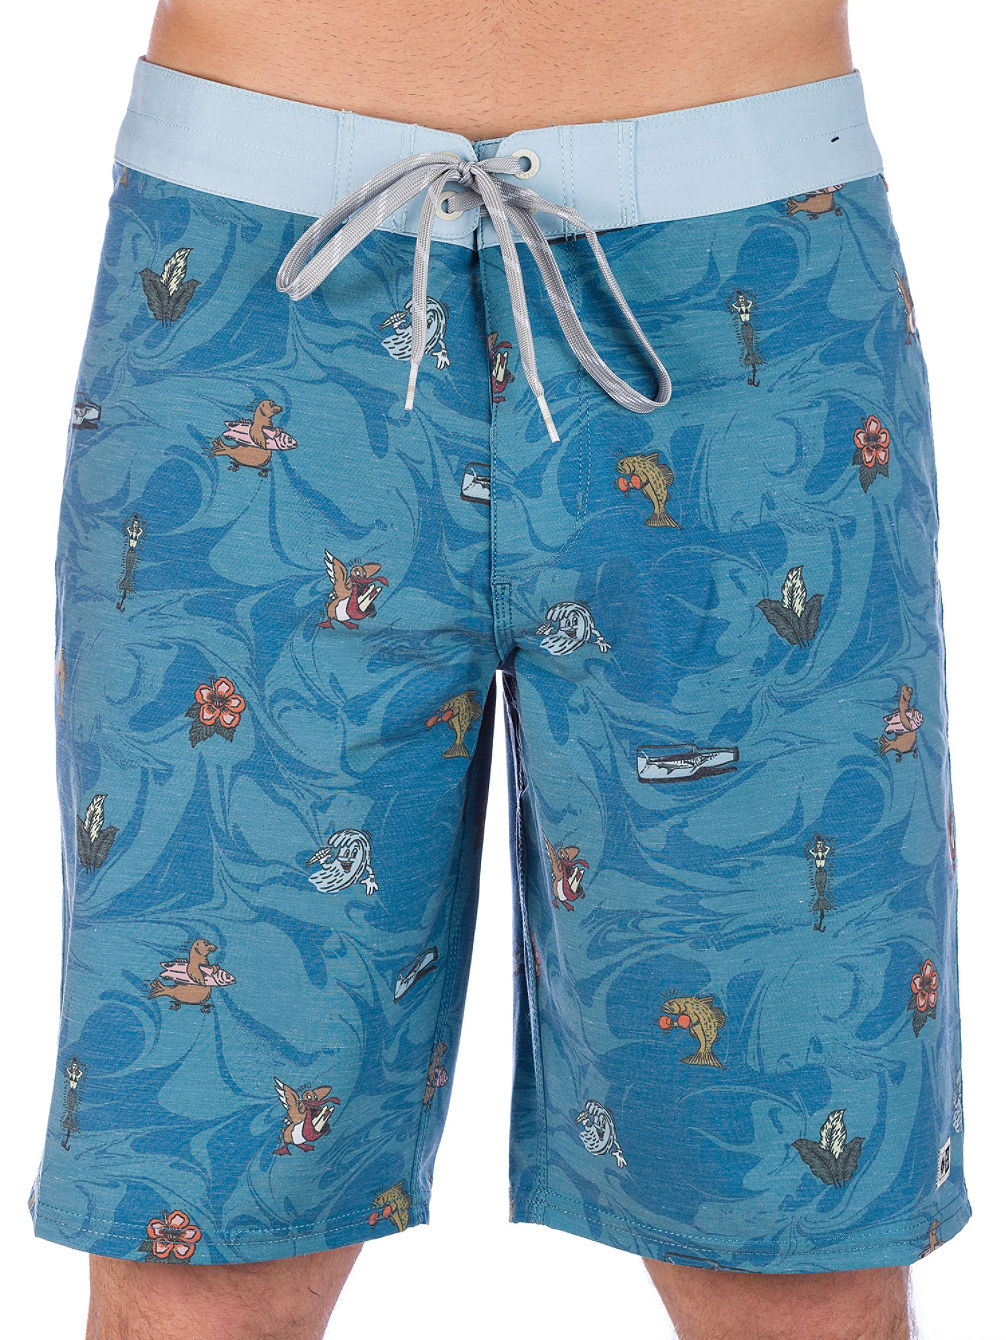 Bonzarelly Boardshorts